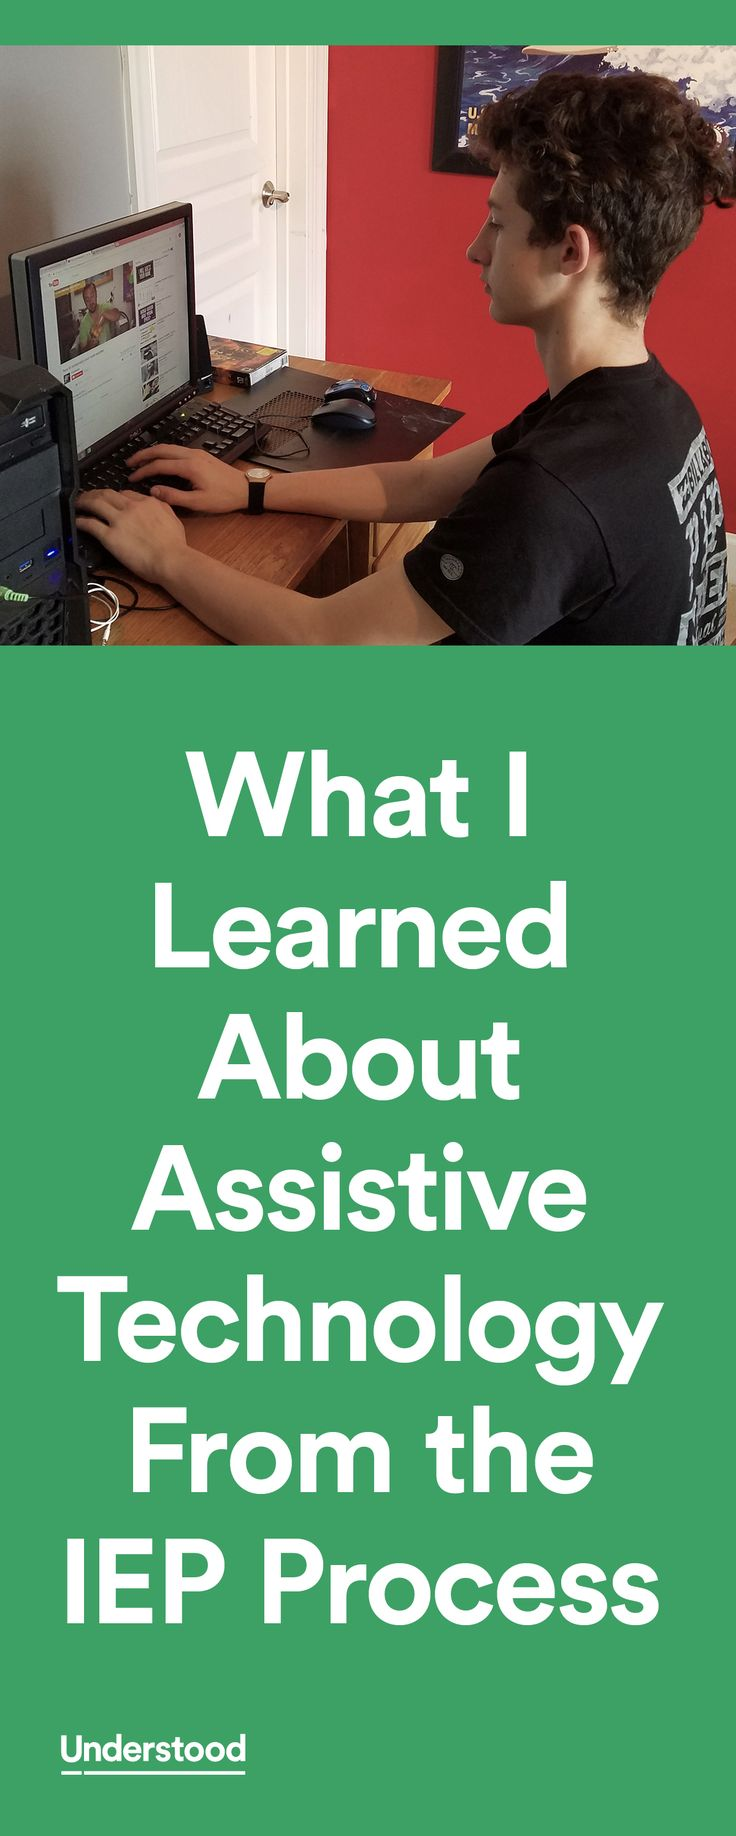 """My journey with assistive technology (AT) started eight years ago when my son was diagnosed with dyslexia and got his first IEP. We knew that under the Individuals with Disabilities Education Act, our IEP team had to consider AT. But we weren't exactly sure what that meant."""